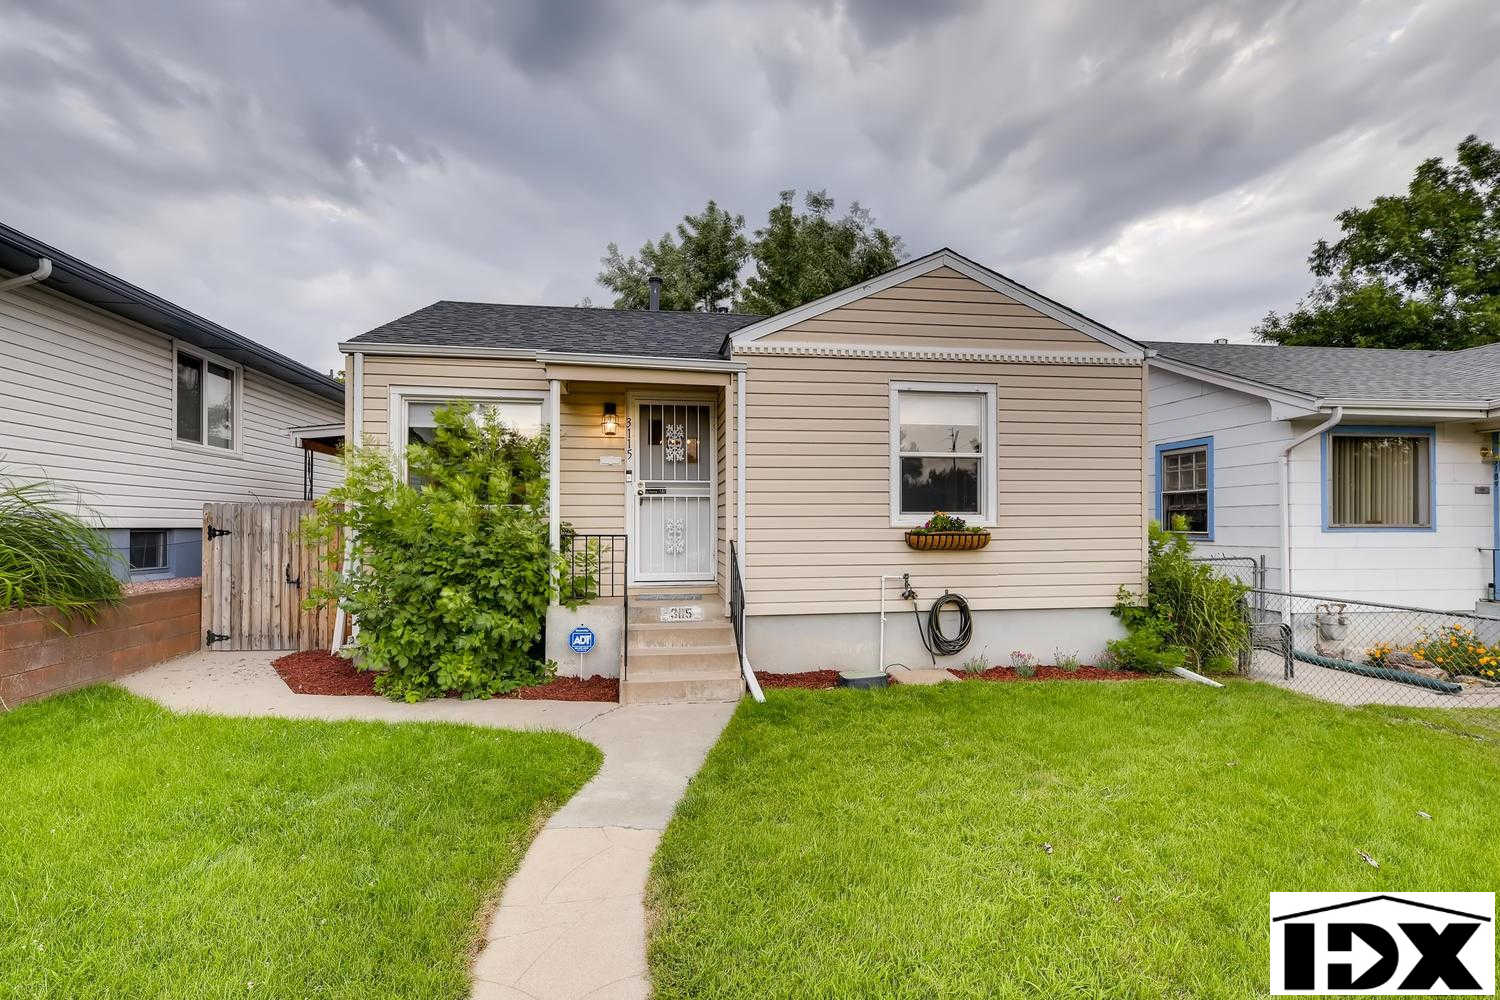 3115 South Washington Street, Englewood, CO 80113 has an Open House on  Sunday, August 25, 2019 2:00 PM to 4:00 PM